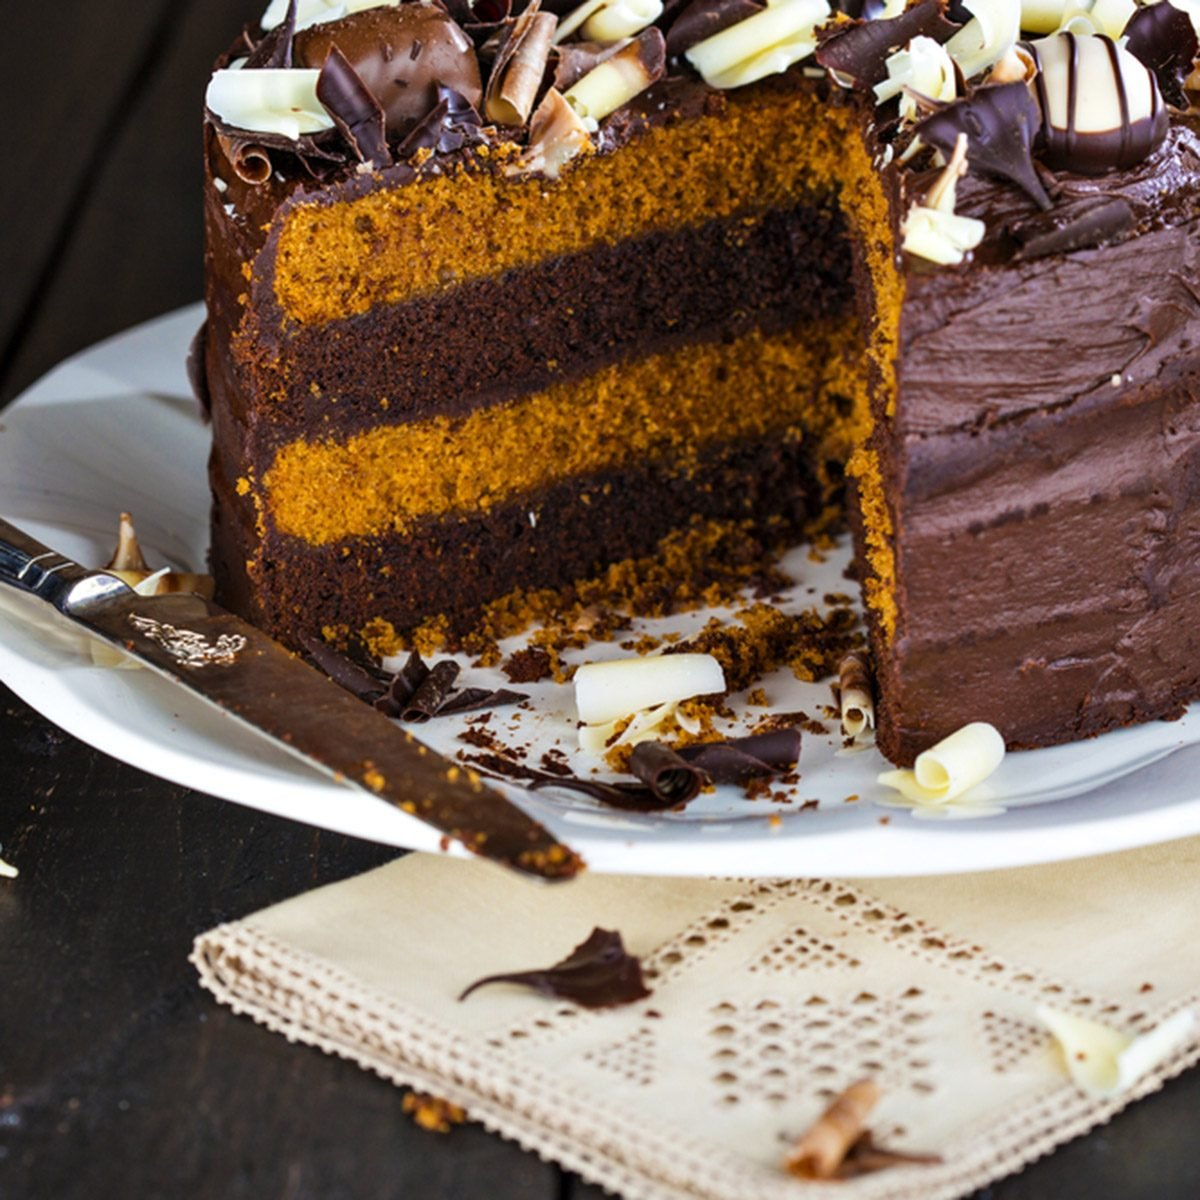 Luxury chocolate and toffee layer cake with a slice cut of it.